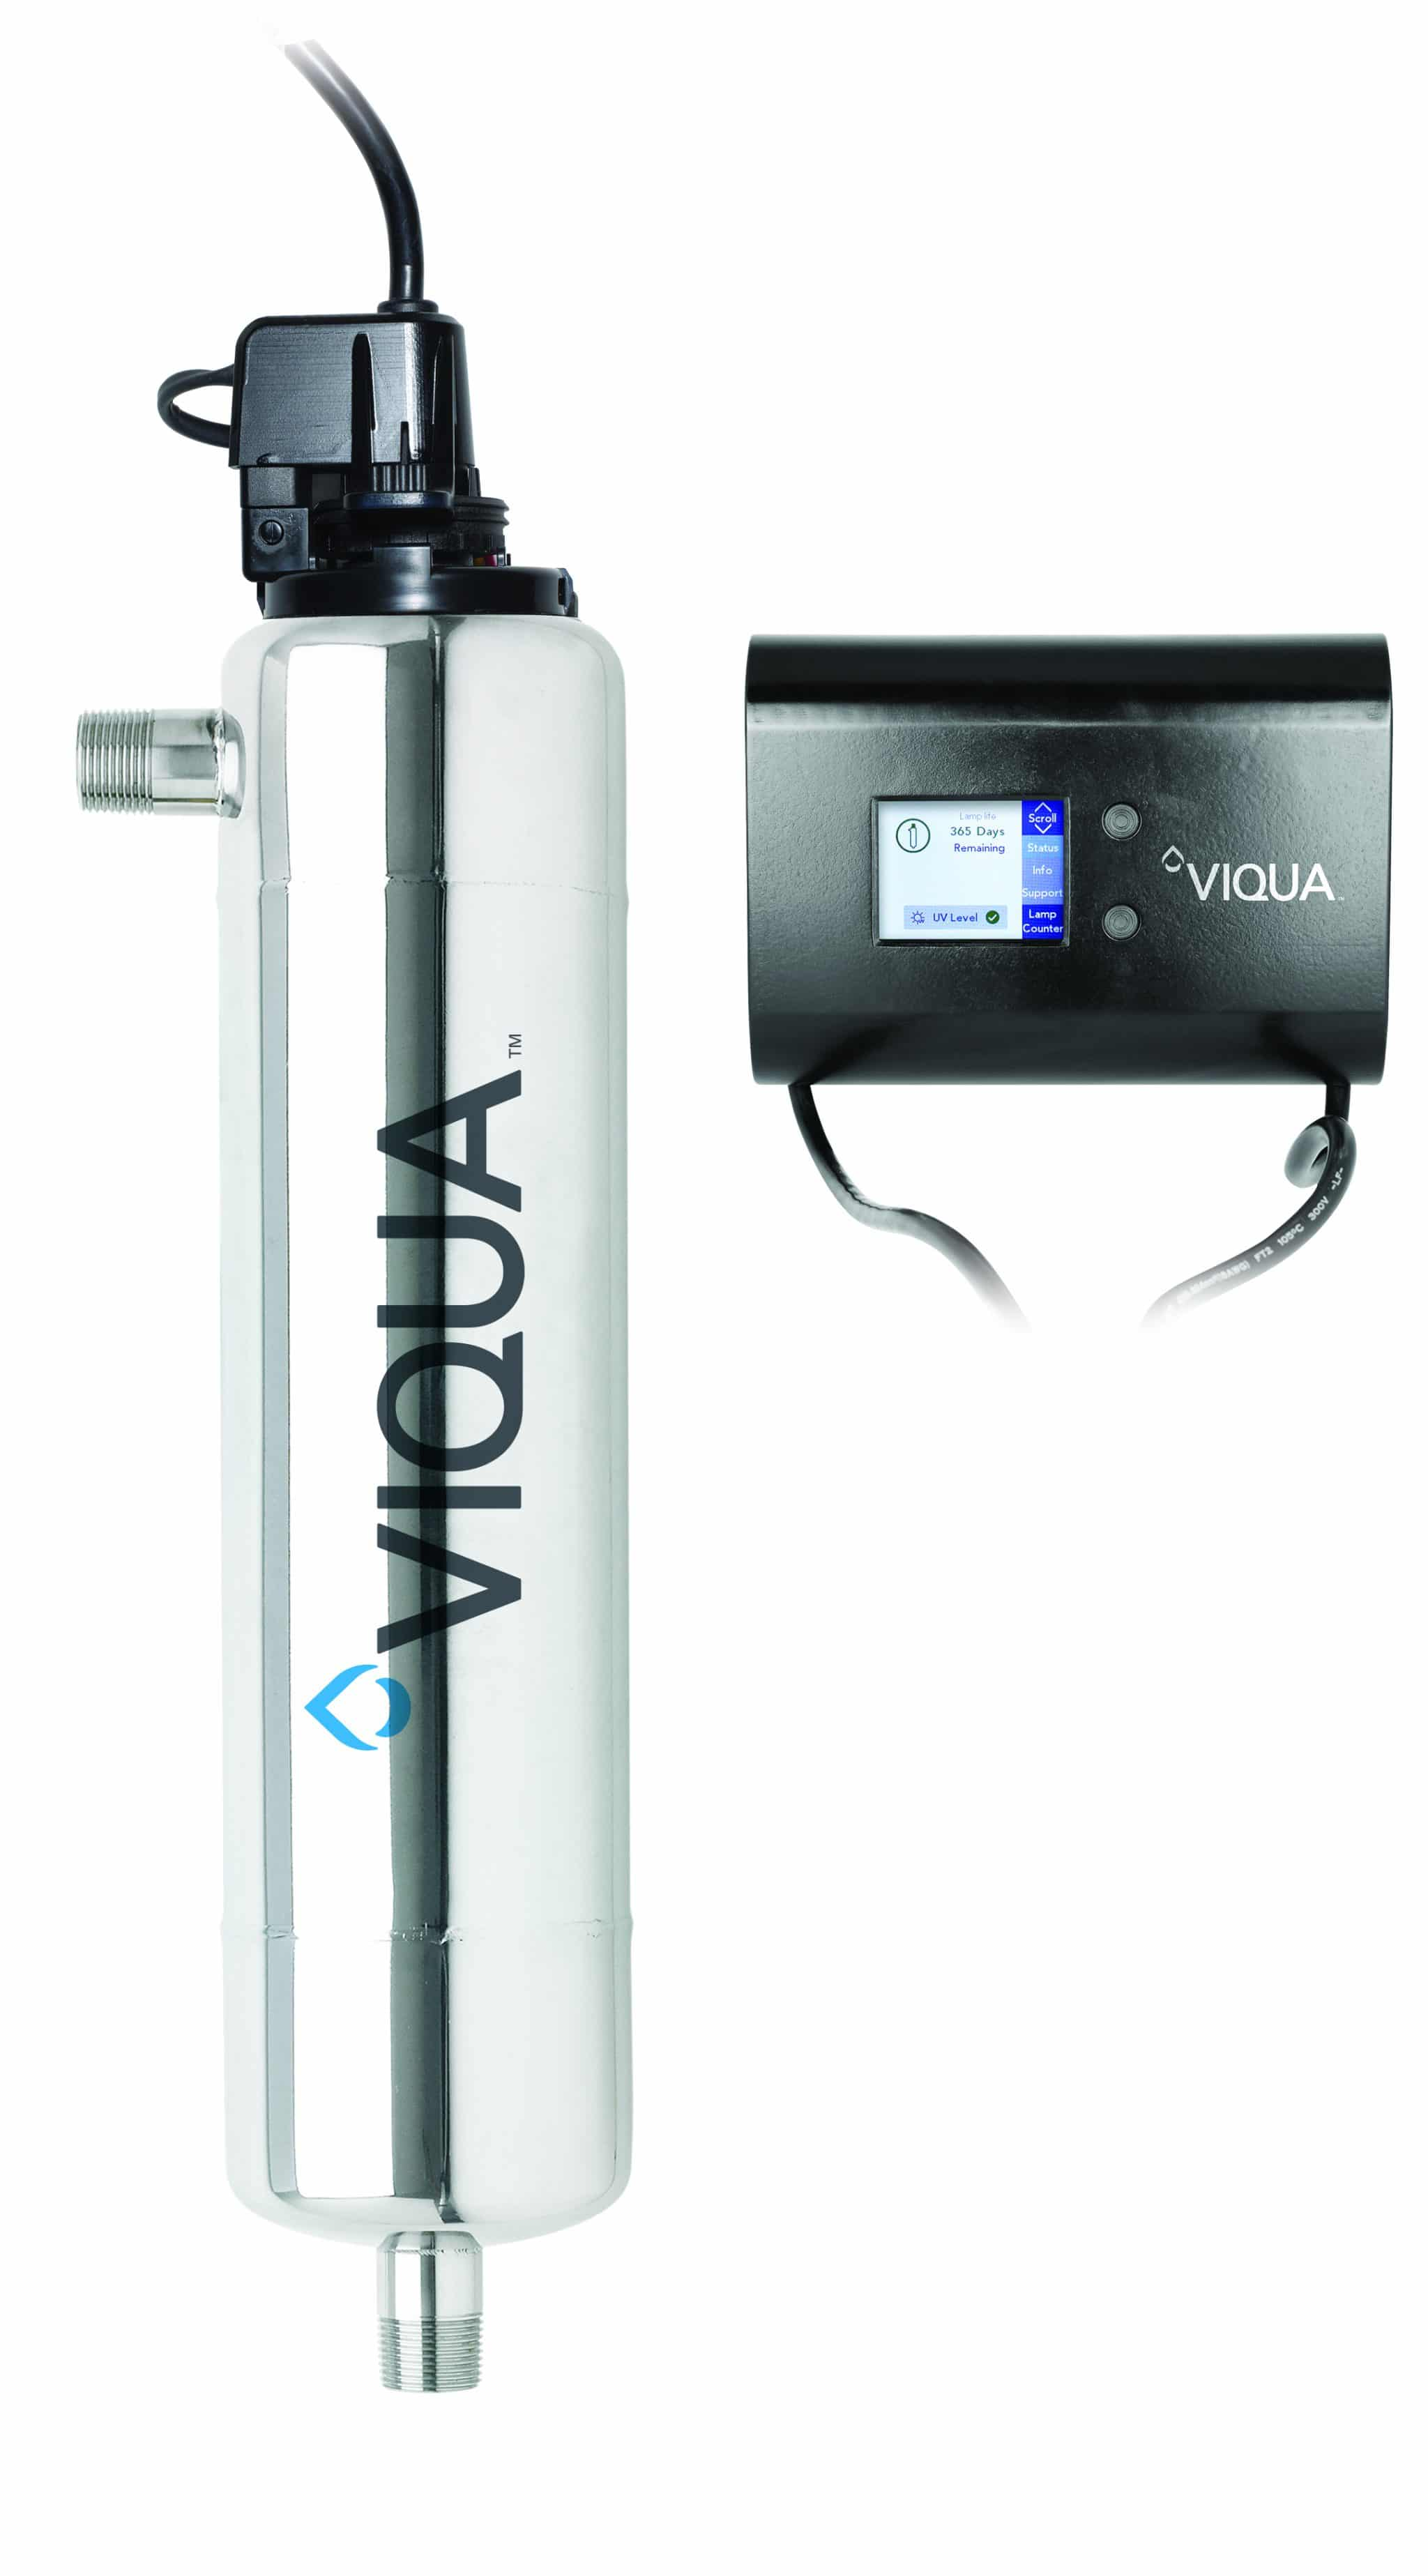 VIQUA UV D4 Premium with LCD